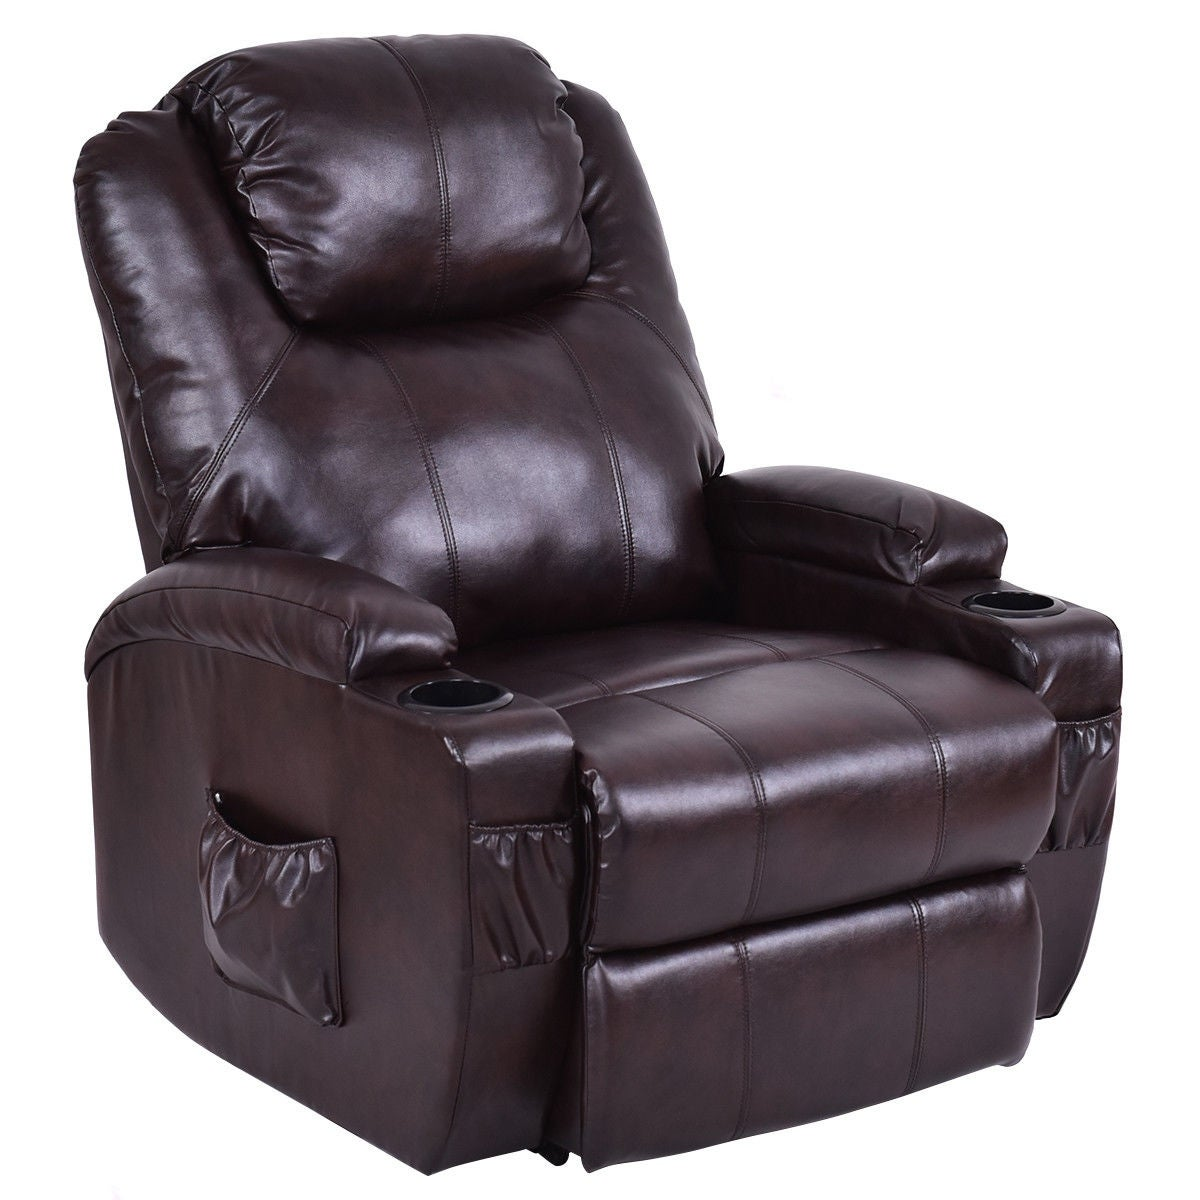 Shop Costway Lift Chair Electric Power Recliner w/Remote and Cup Holder Living Room Furniture - Free Shipping Today - Overstock.com - 18502750  sc 1 st  Overstock.com & Shop Costway Lift Chair Electric Power Recliner w/Remote and Cup ...